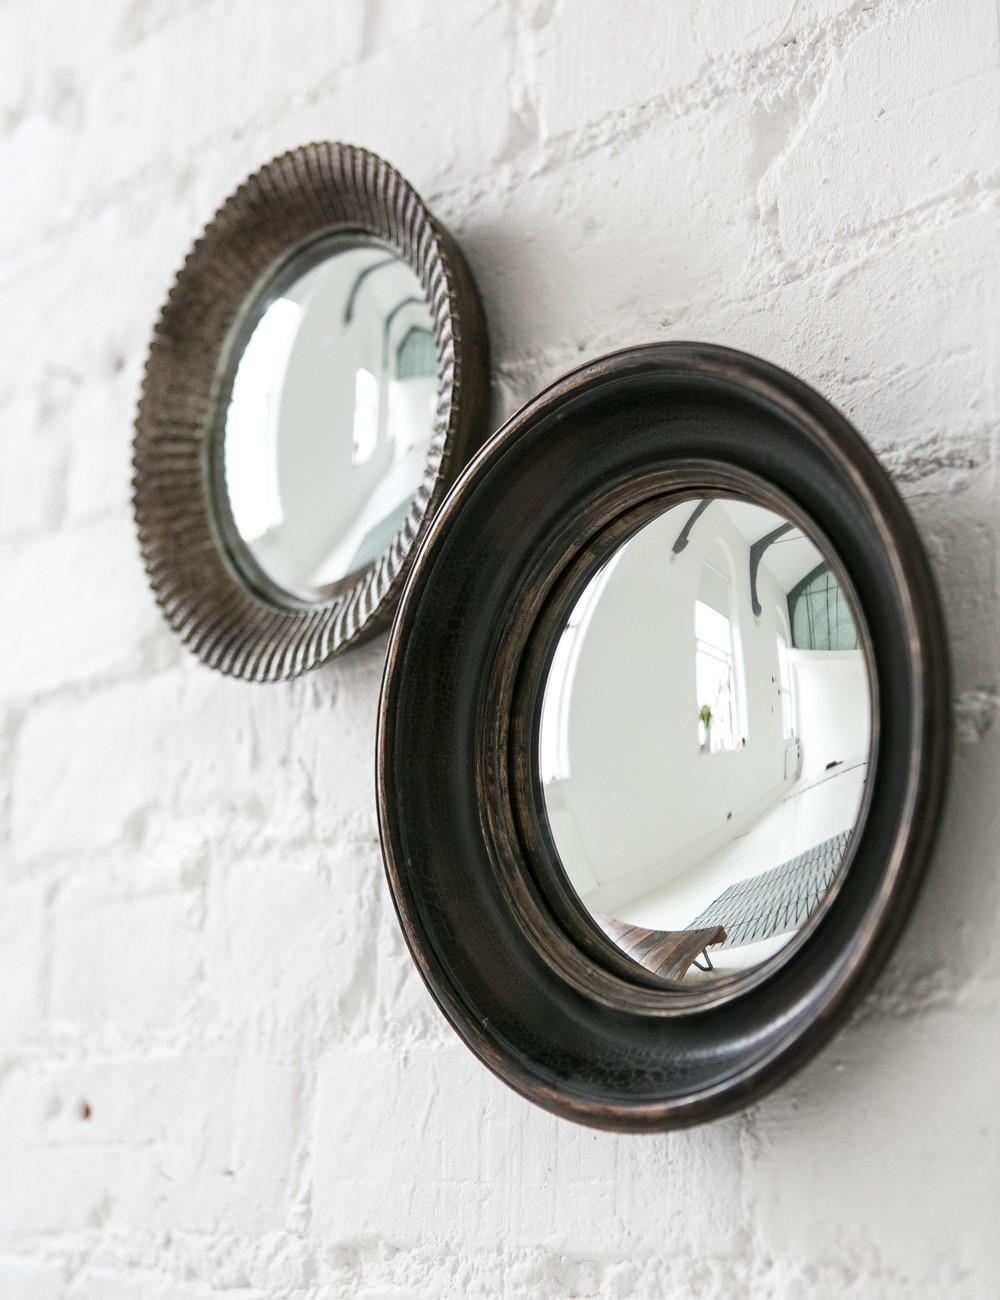 Small Convex Mirror For Creating Striking Wall Decoration | Homesfeed Inside Small Round Convex Mirror (View 7 of 20)